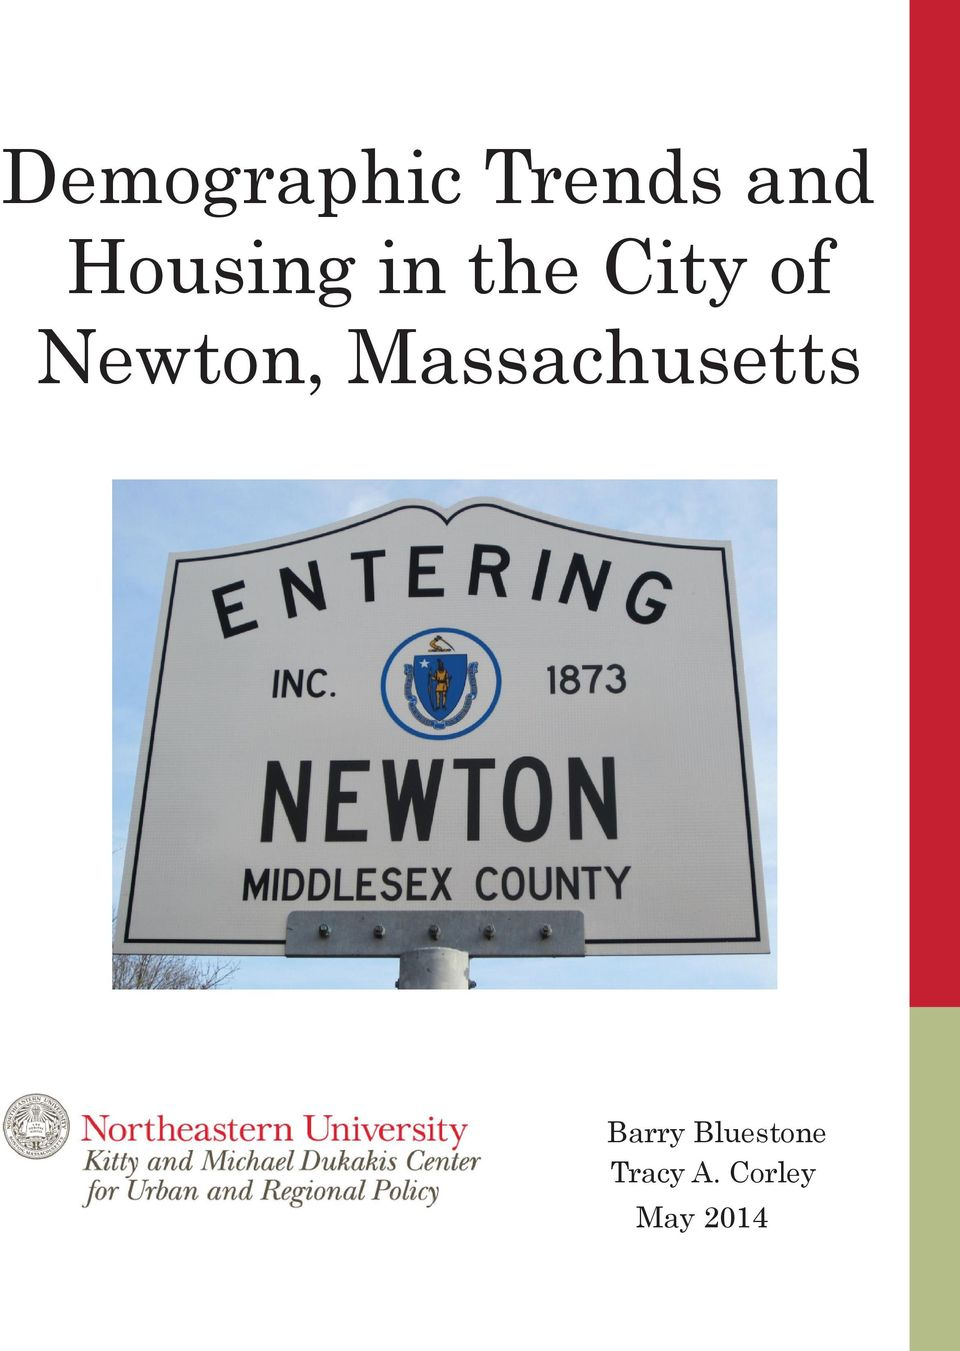 Newton, Massachusetts